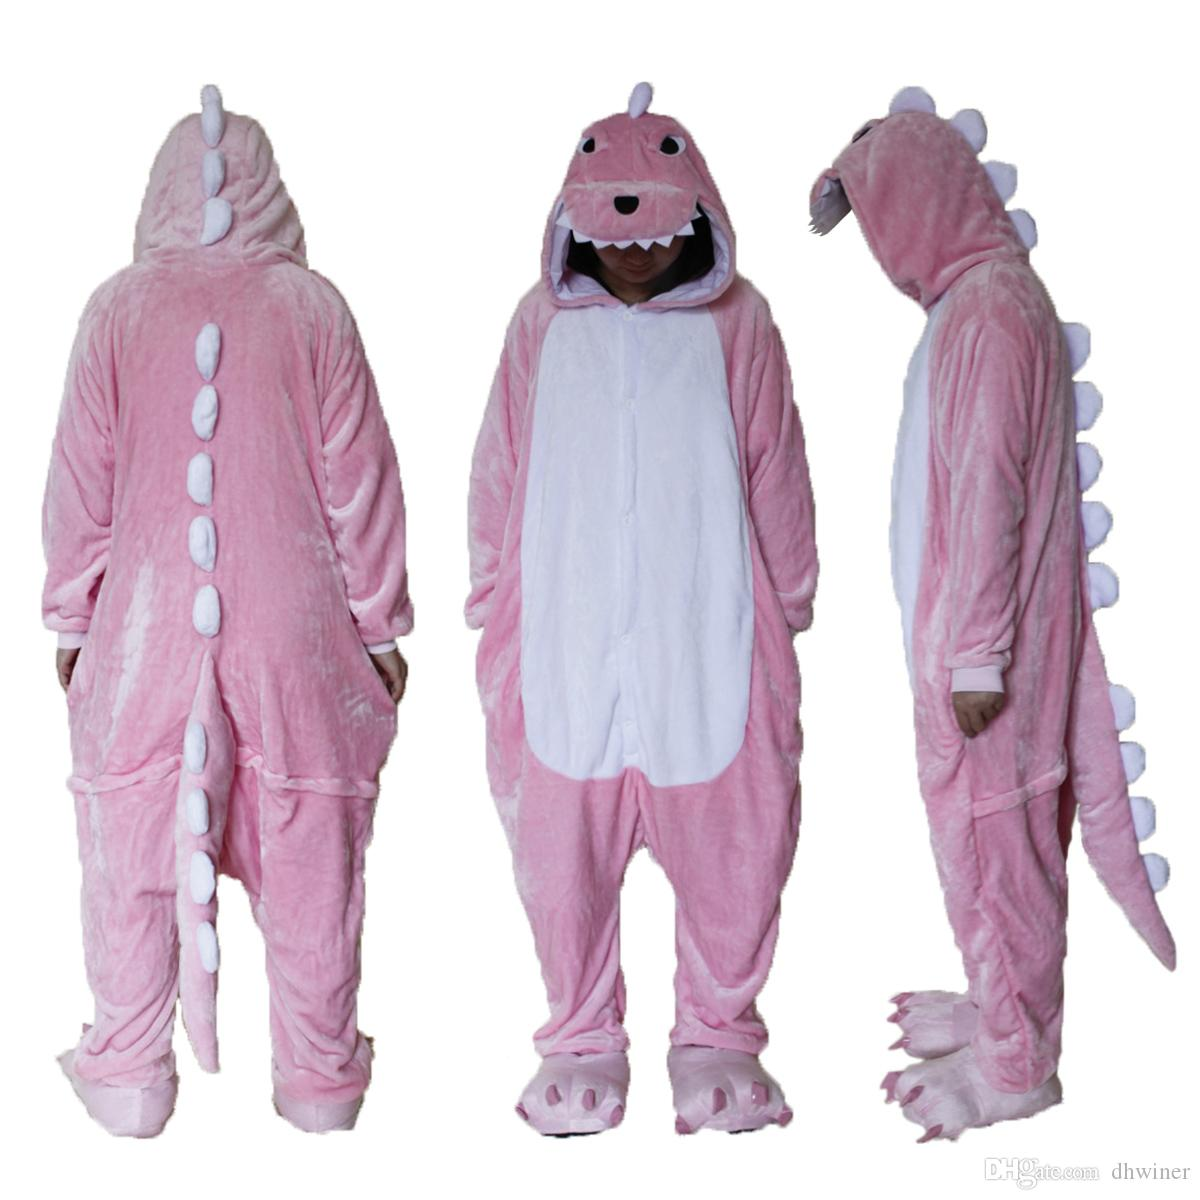 11c2033b1397 One Piece Pajamas Unisex Costume Adult Animal Onesie Pink Dinosaur Cosplay  Funny Costume Themes 4 Person Group Halloween Costumes From Dhwiner